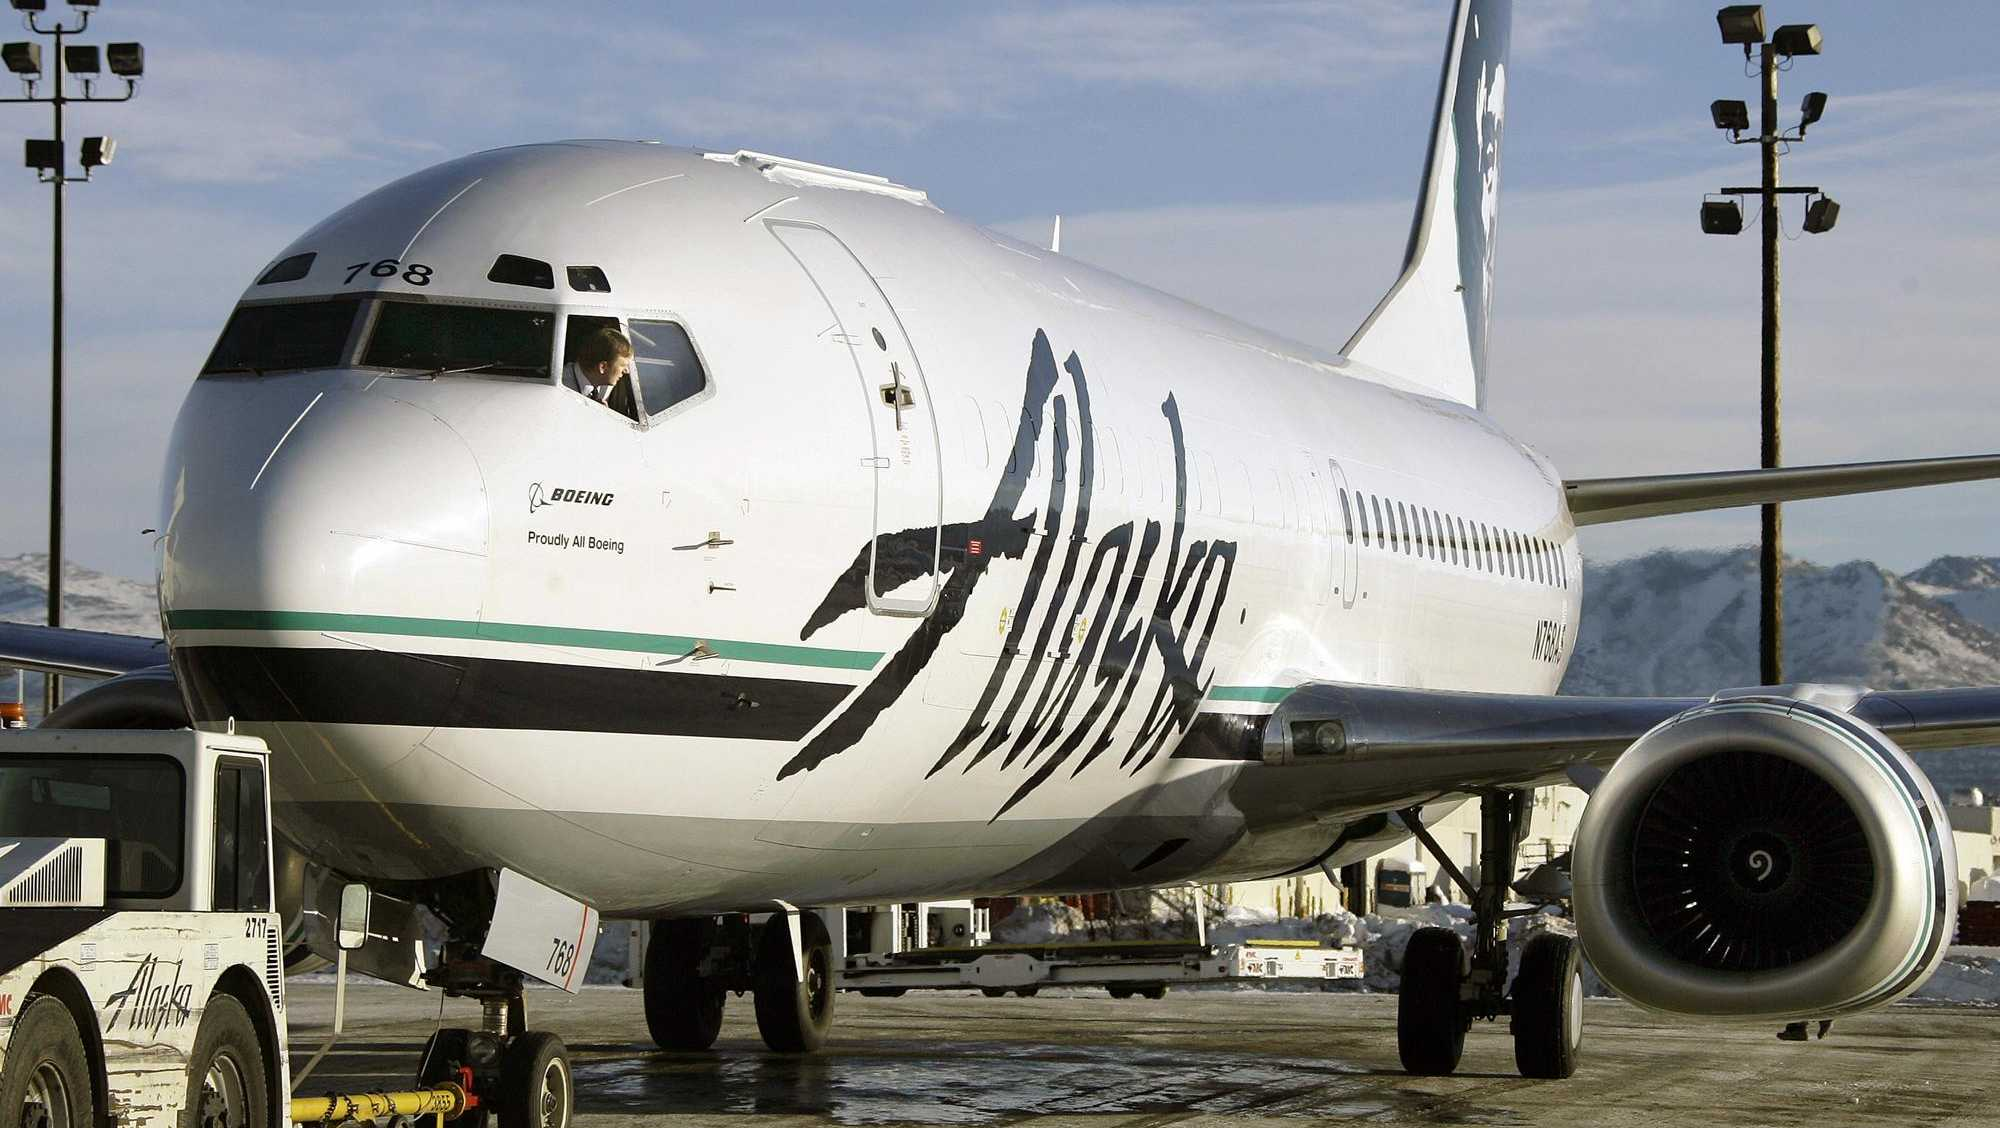 Alaska Airlines modified Boeing 737-400, Anchorage, Alaska